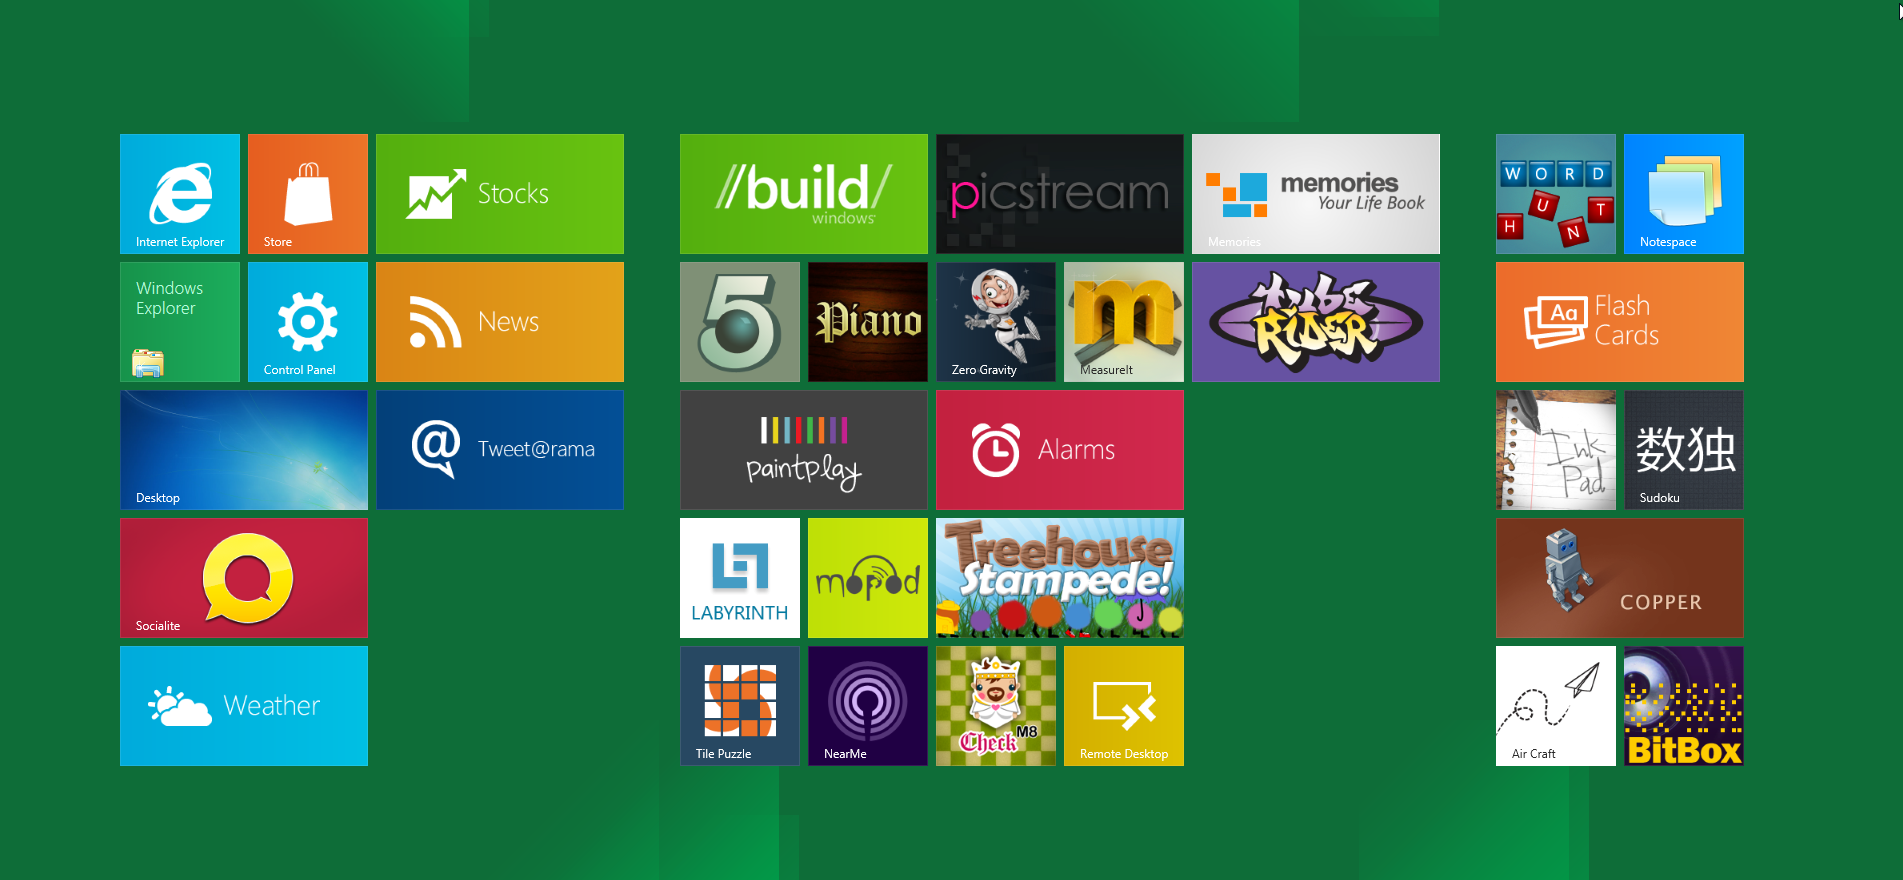 Windows8-MetroUI-EdgeUI-200.png?nocache=1316173056665